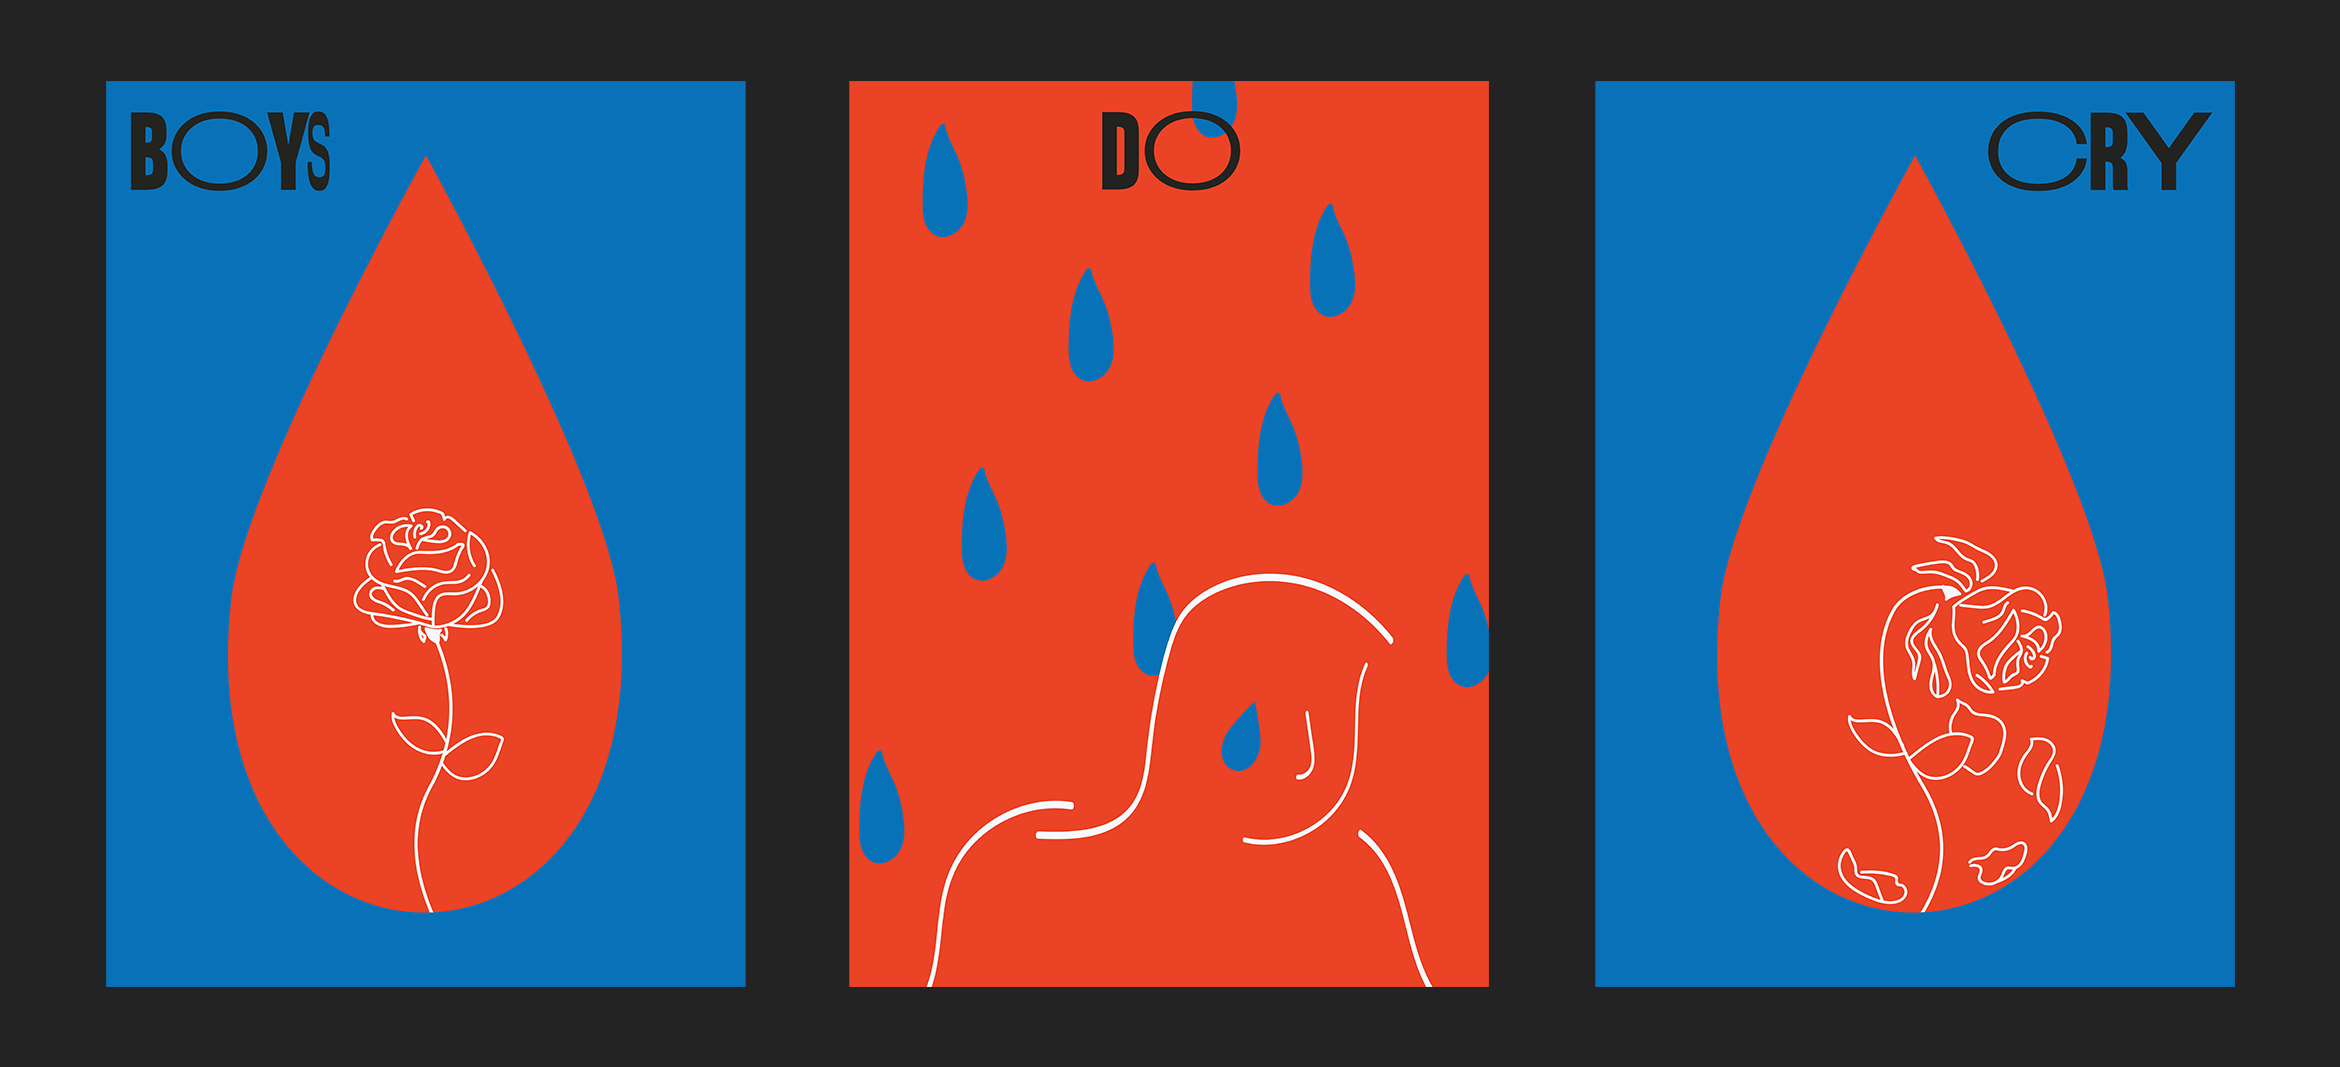 Boys Do Cry Poster Series